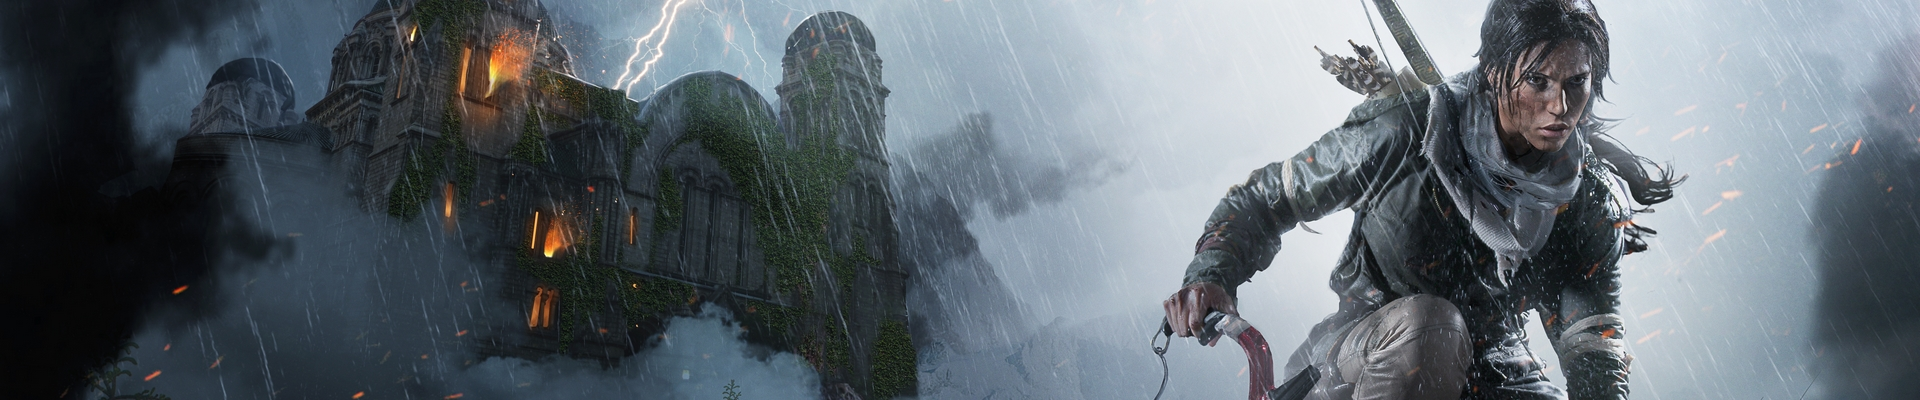 """Image de l'article TR10 : Crystal Dynamics annonce """"Cold Darkness Awakened"""""""